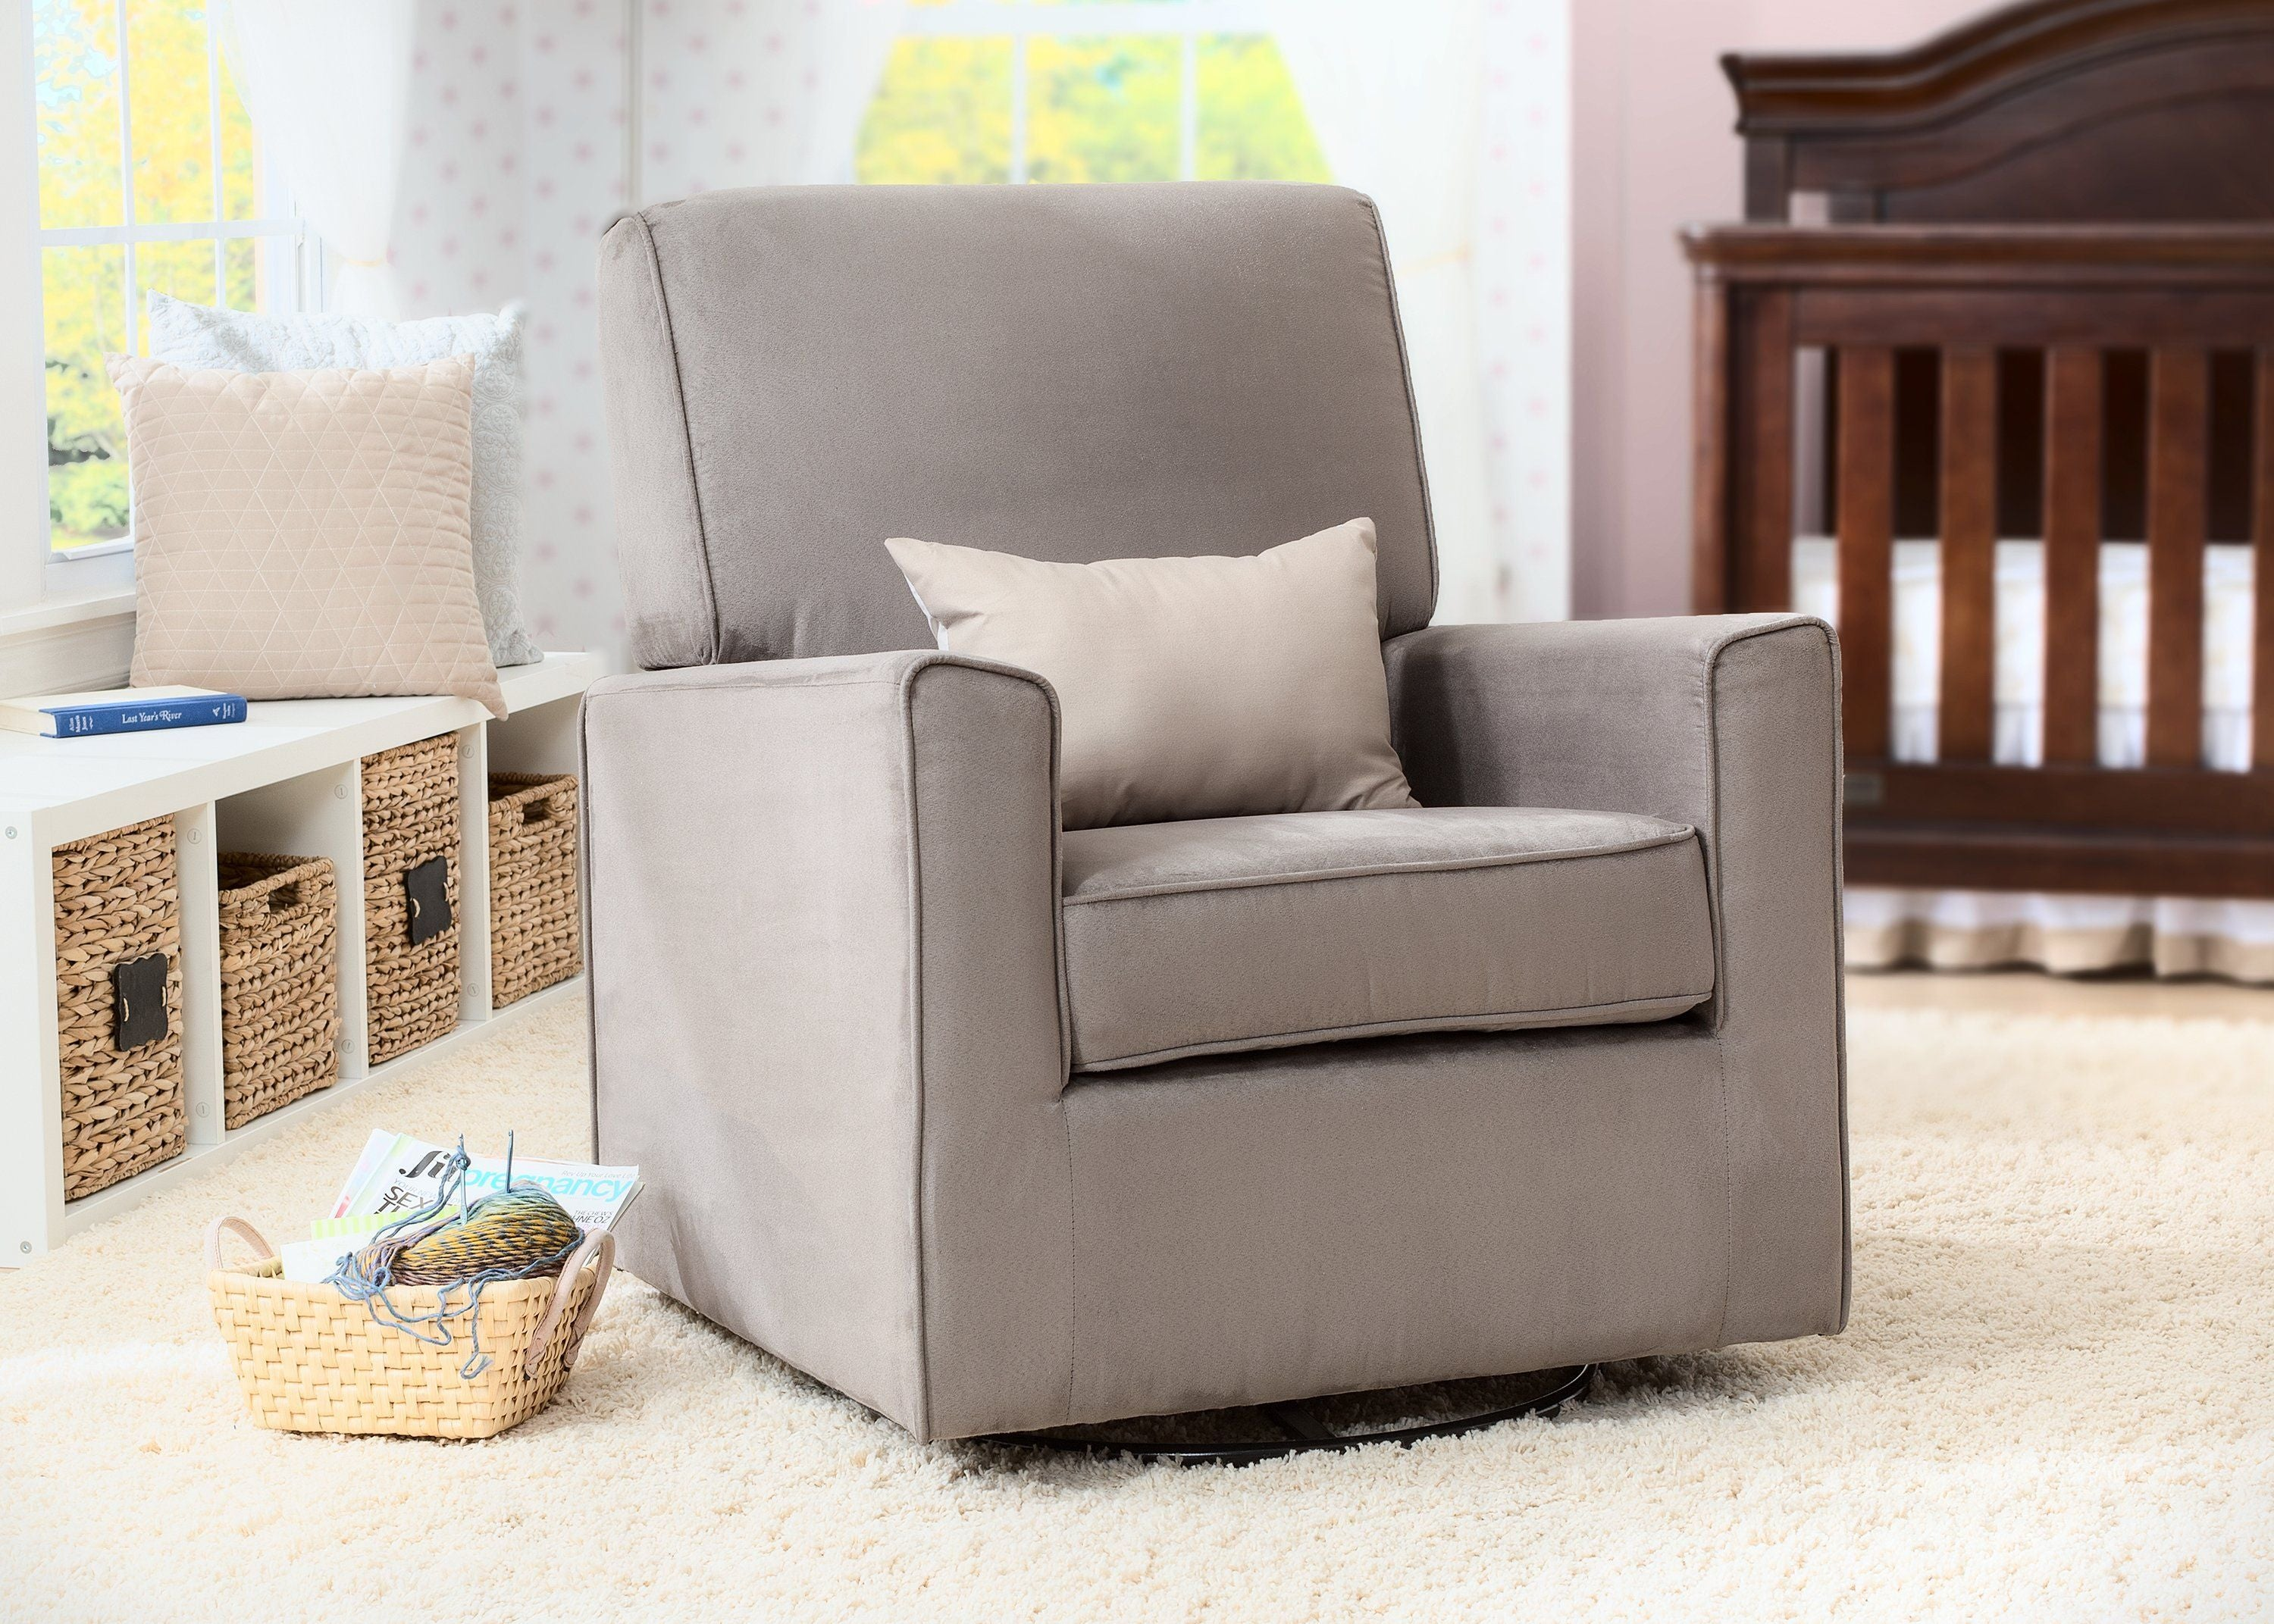 unbelievable livings beautiful room crib reliable multipurpose ottoman for and set chair ideas glider living full swivel baby size rocking a constructed to chairs comfortable nursery shermag fosterboyspizza is of convertible furniture impressive